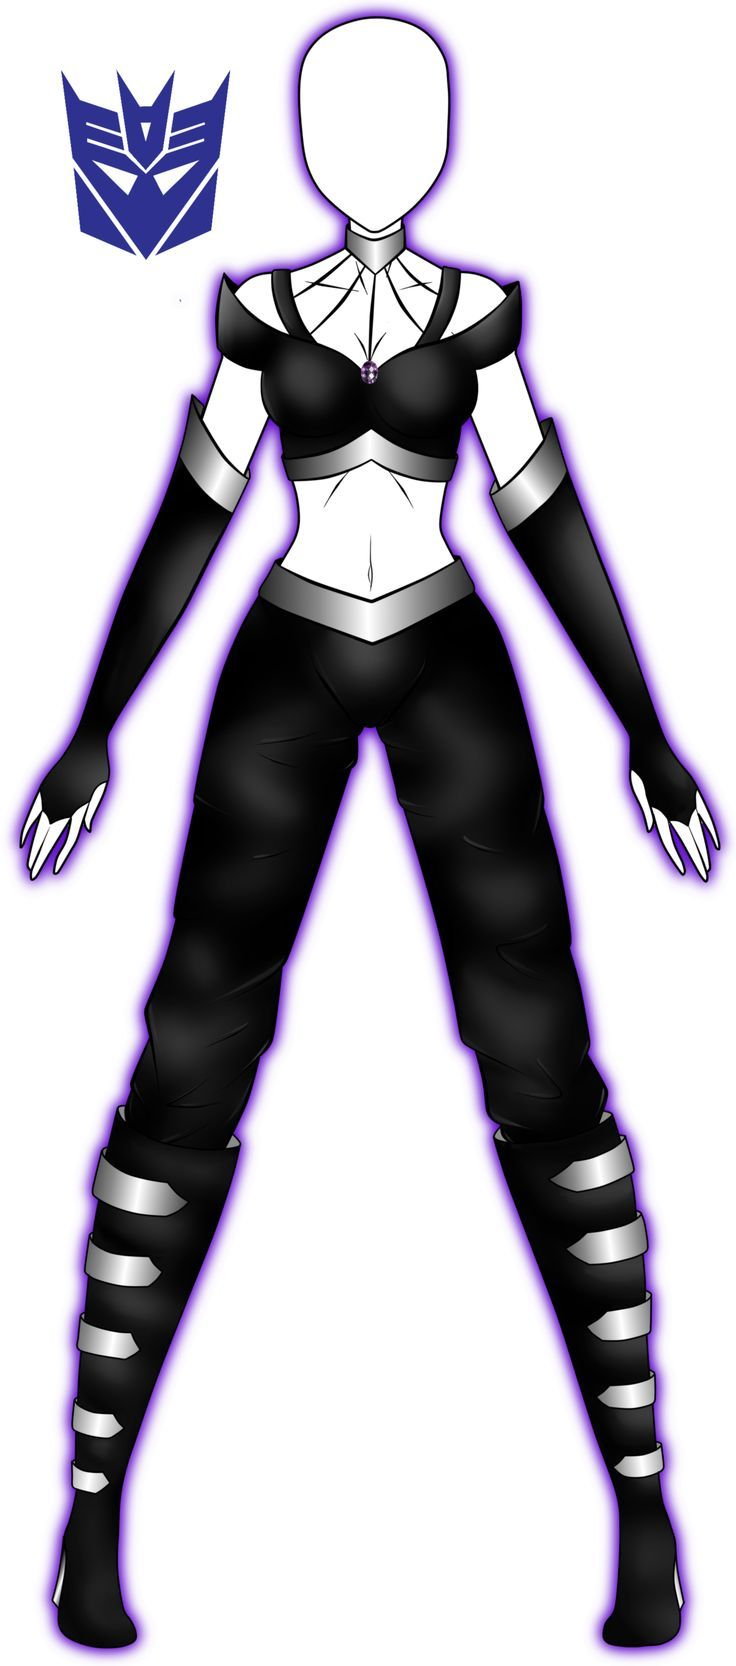 Old outfit revamp. by 2050.deviantart.com on @DeviantArt